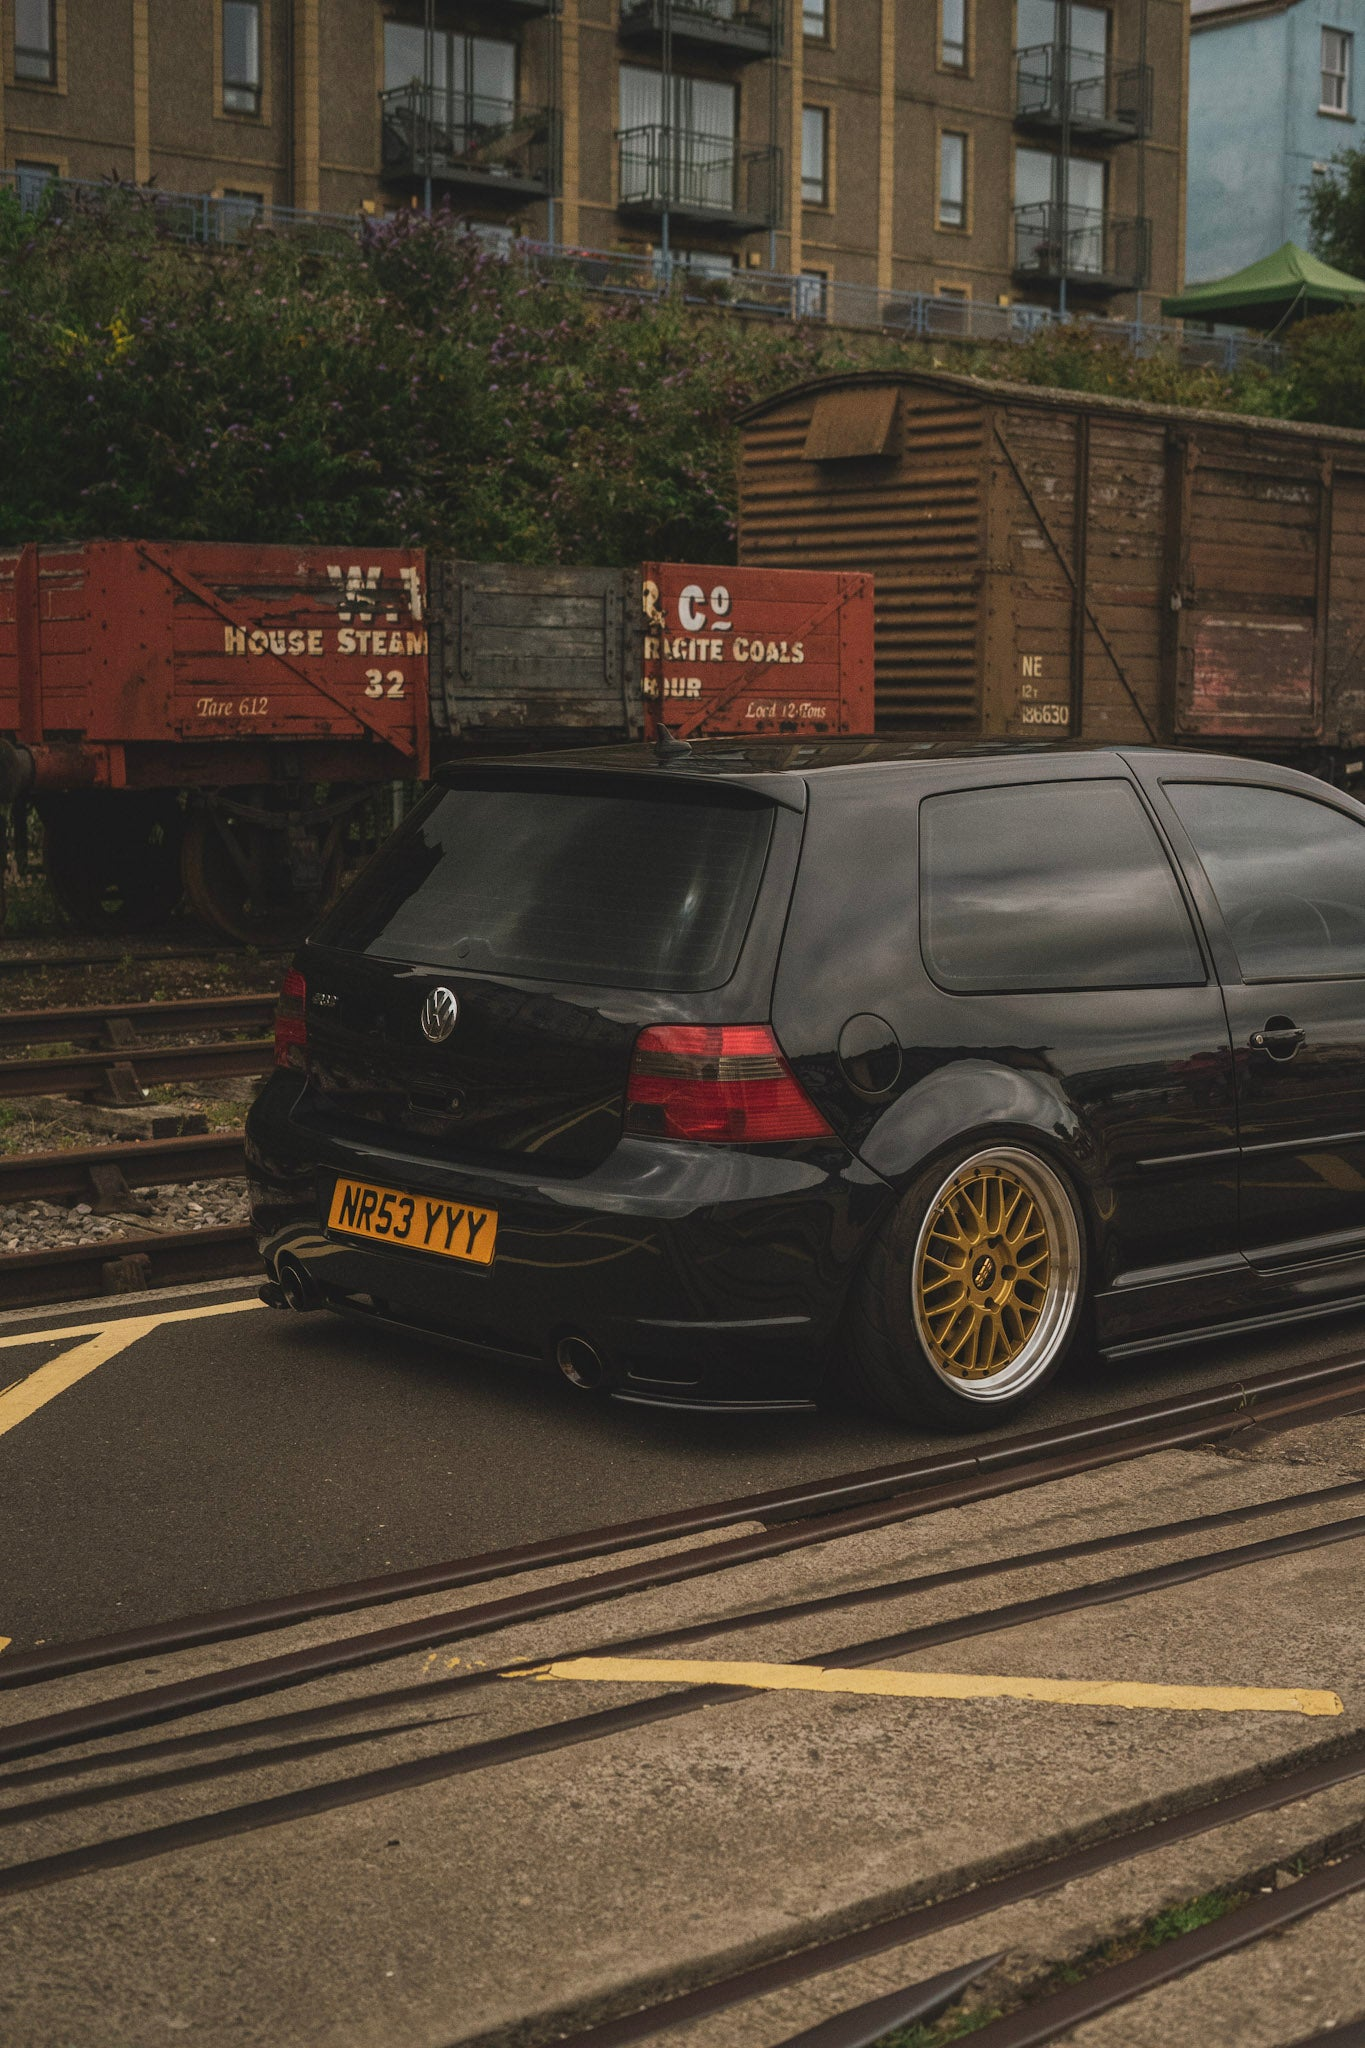 Black and Gold always does the charm, Charlie's Mk4 R32